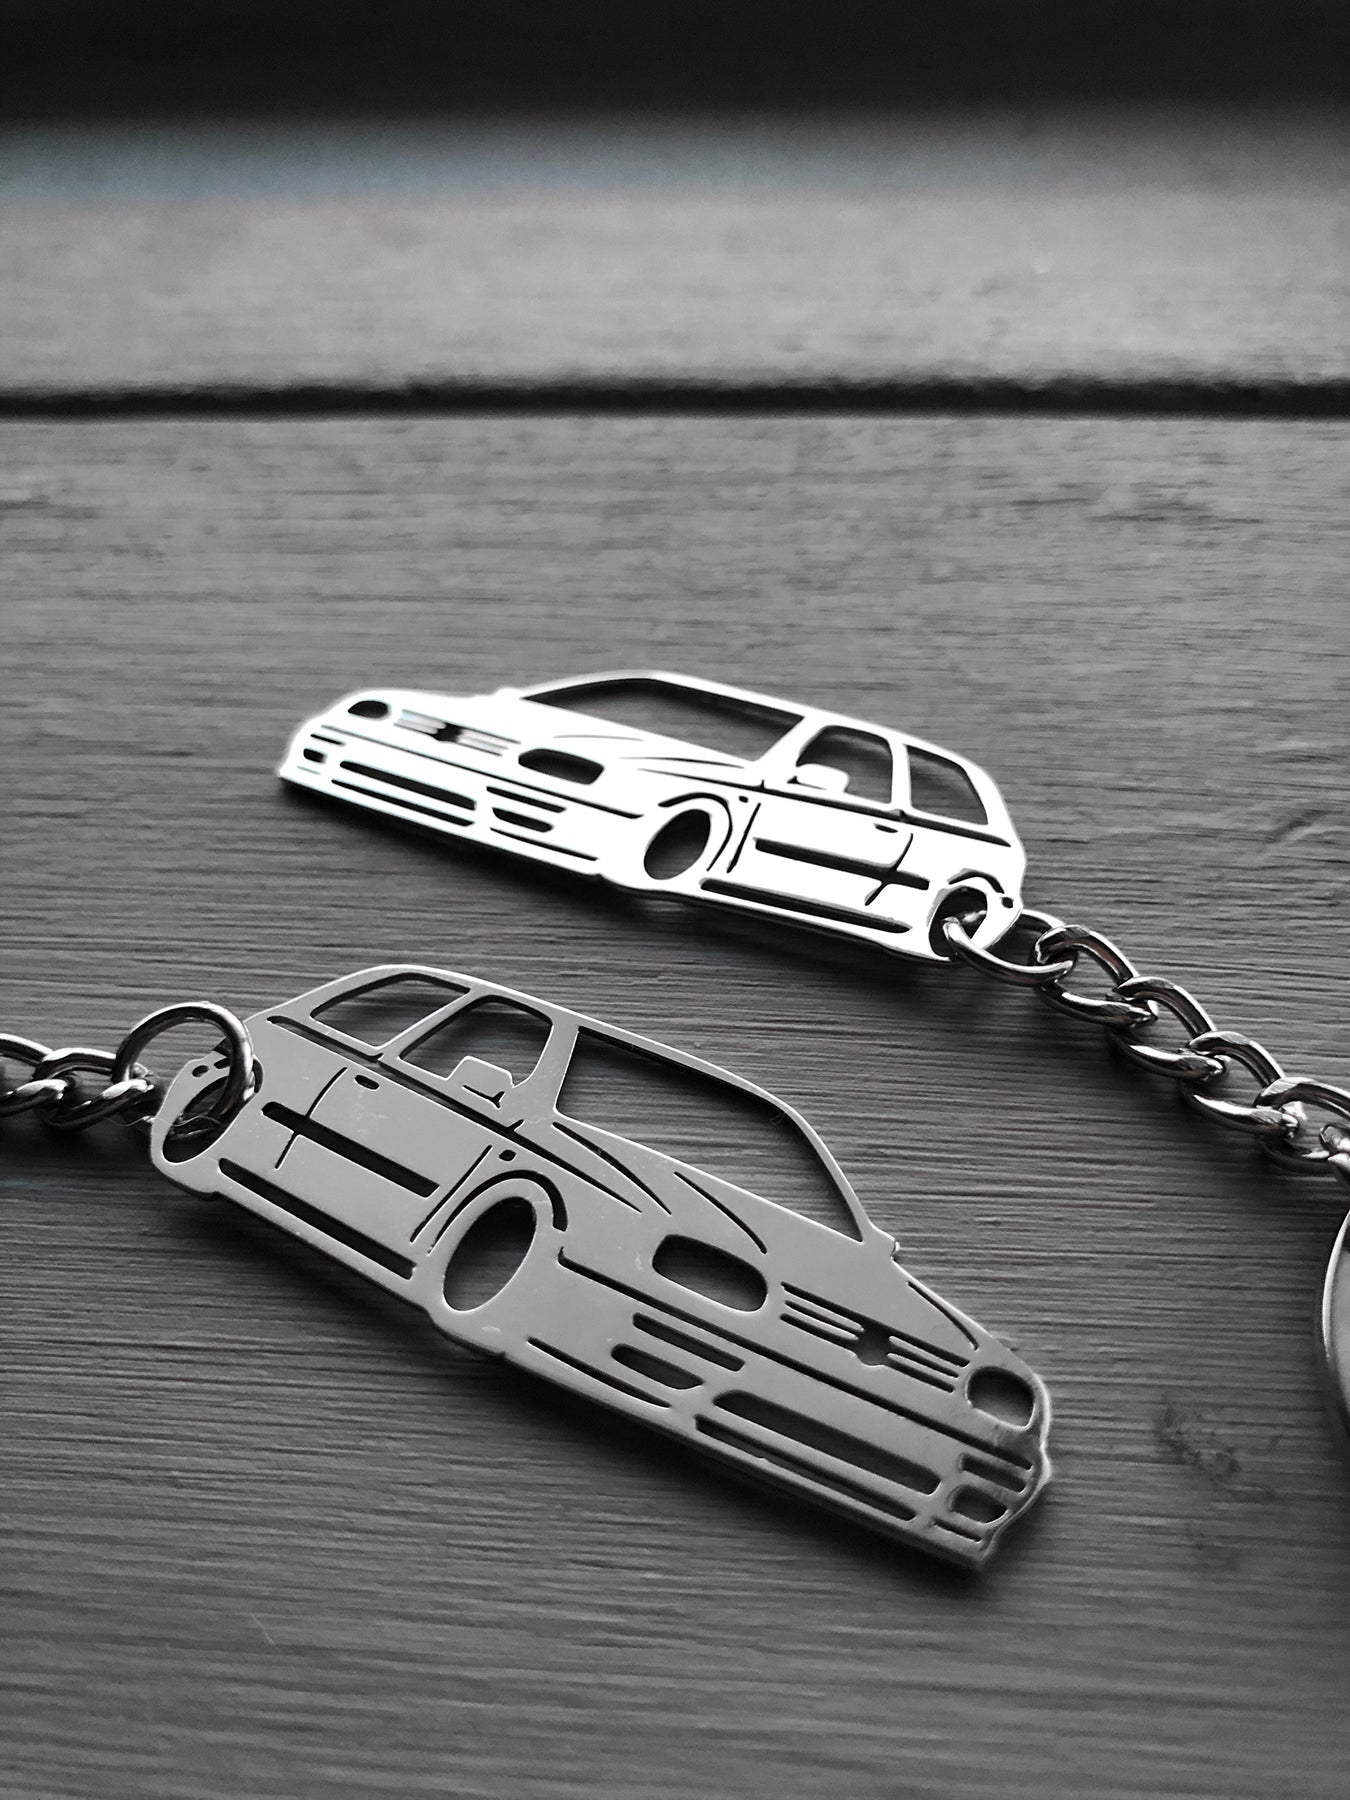 mk3 golf stance key chain